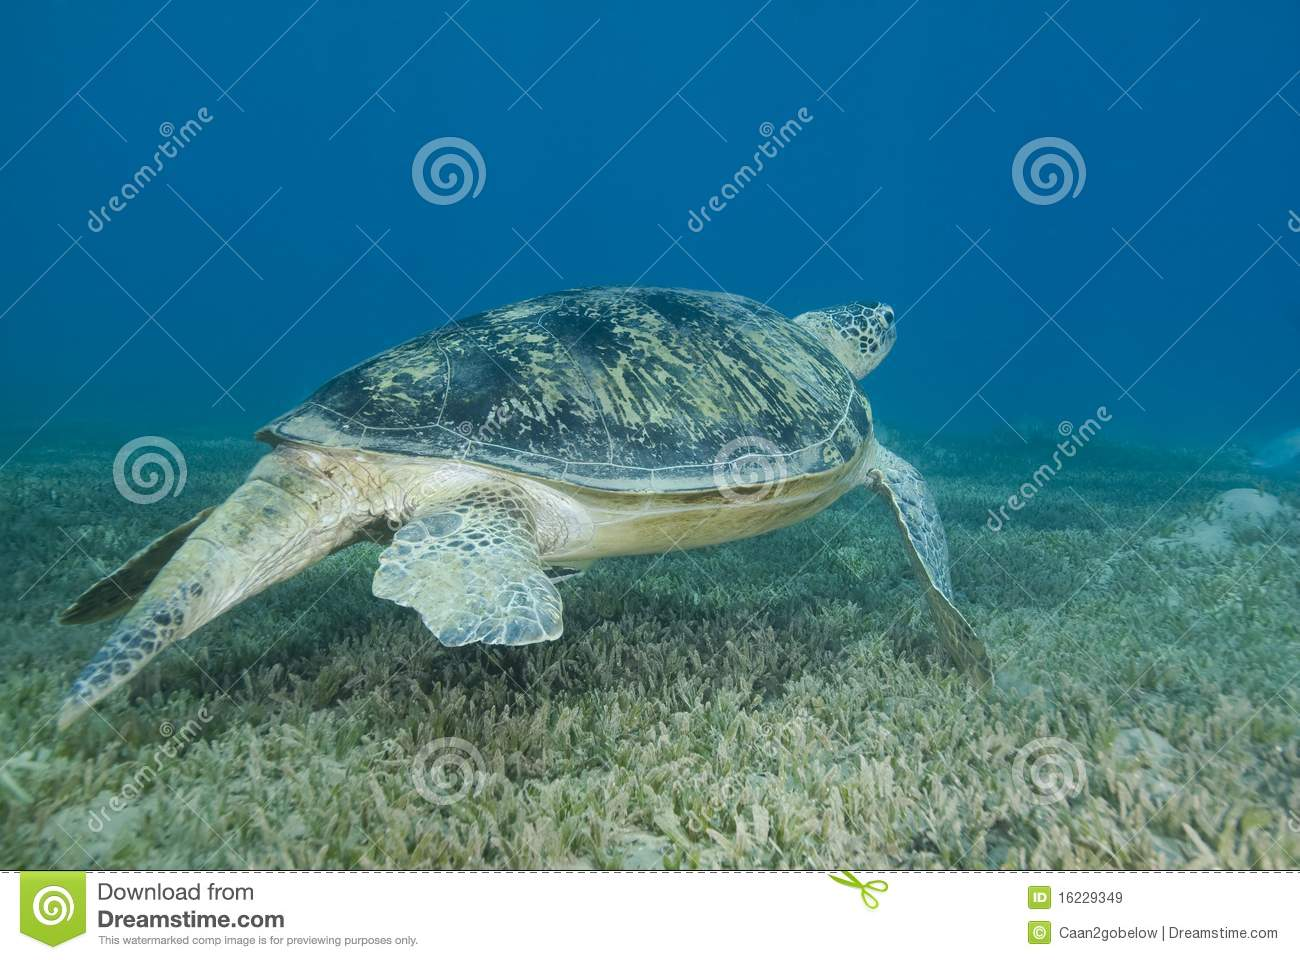 Adult male Green turtle swimming over seagrass.